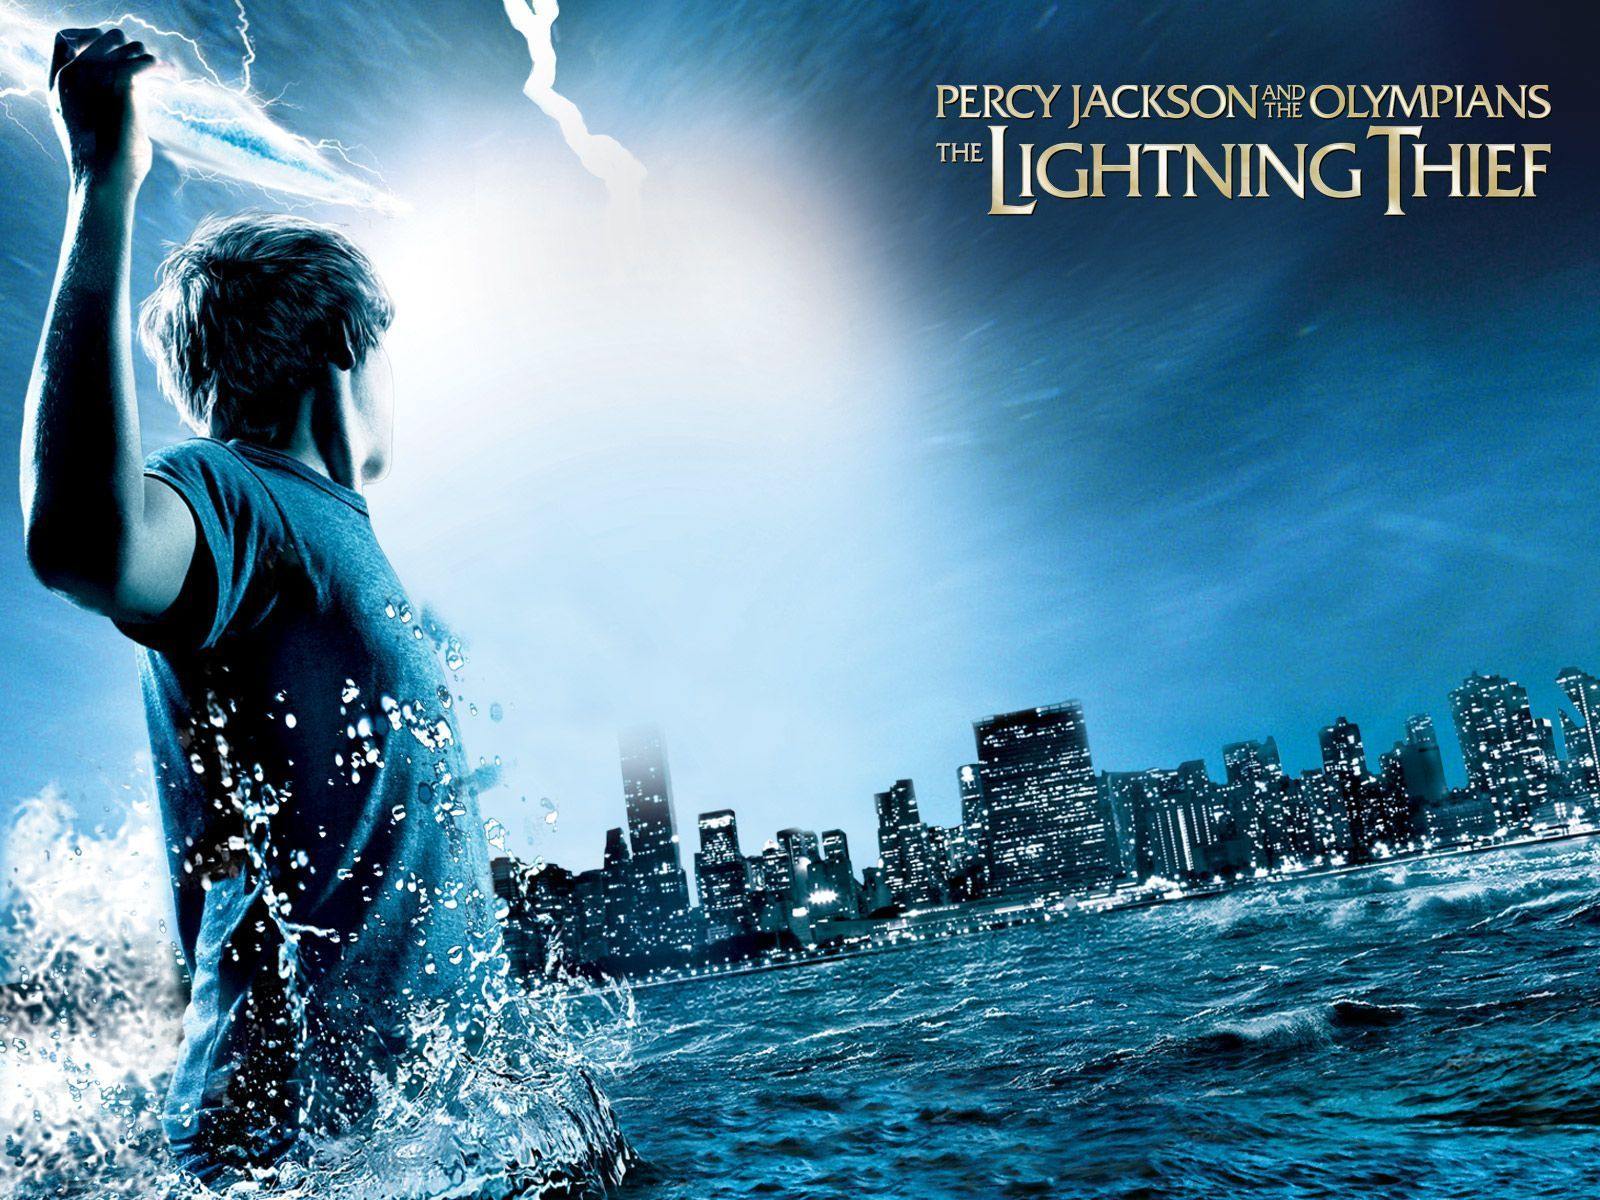 Percy jackson wallpapers wallpaper hd wallpapers pinterest percy jackson sea of monsters hd wallpapers backgrounds percy jackson wallpaper wallpapers voltagebd Images